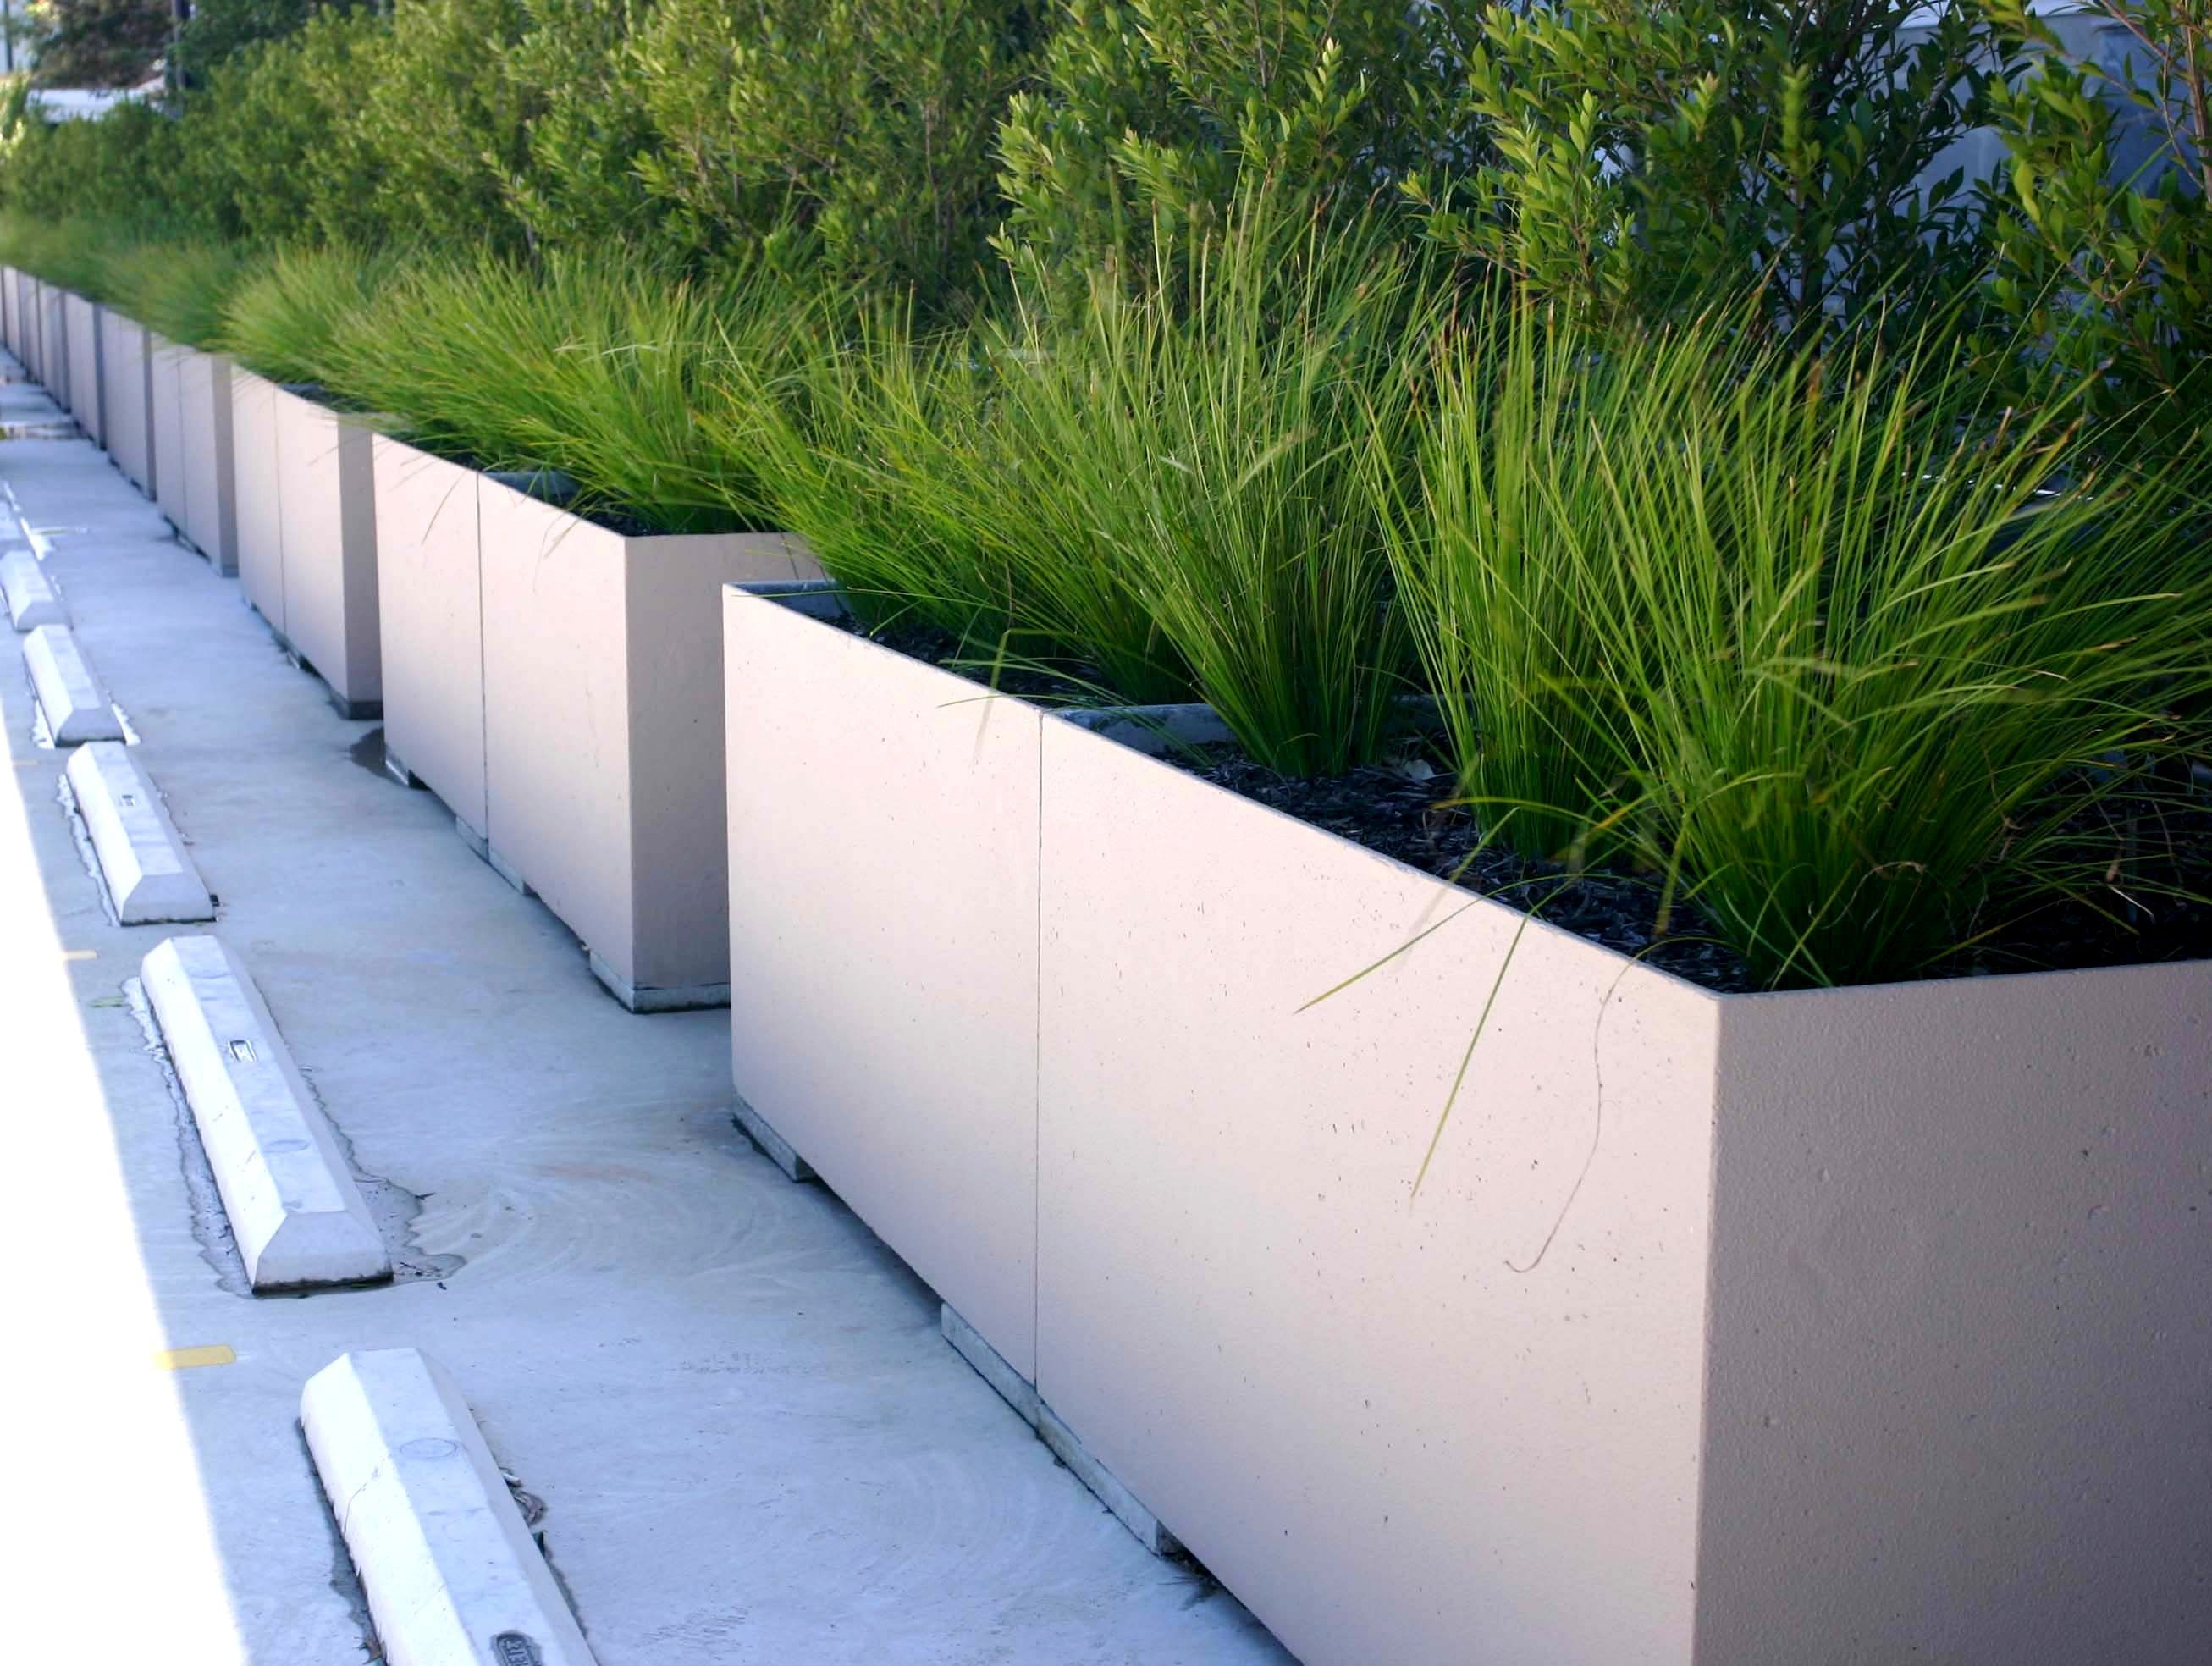 Concrete Planter Boxes In Rectangular Shape Has White Colors Finishing Completed With Green Grass Concrete Planter Boxes Diy Concrete Planters Concrete Garden